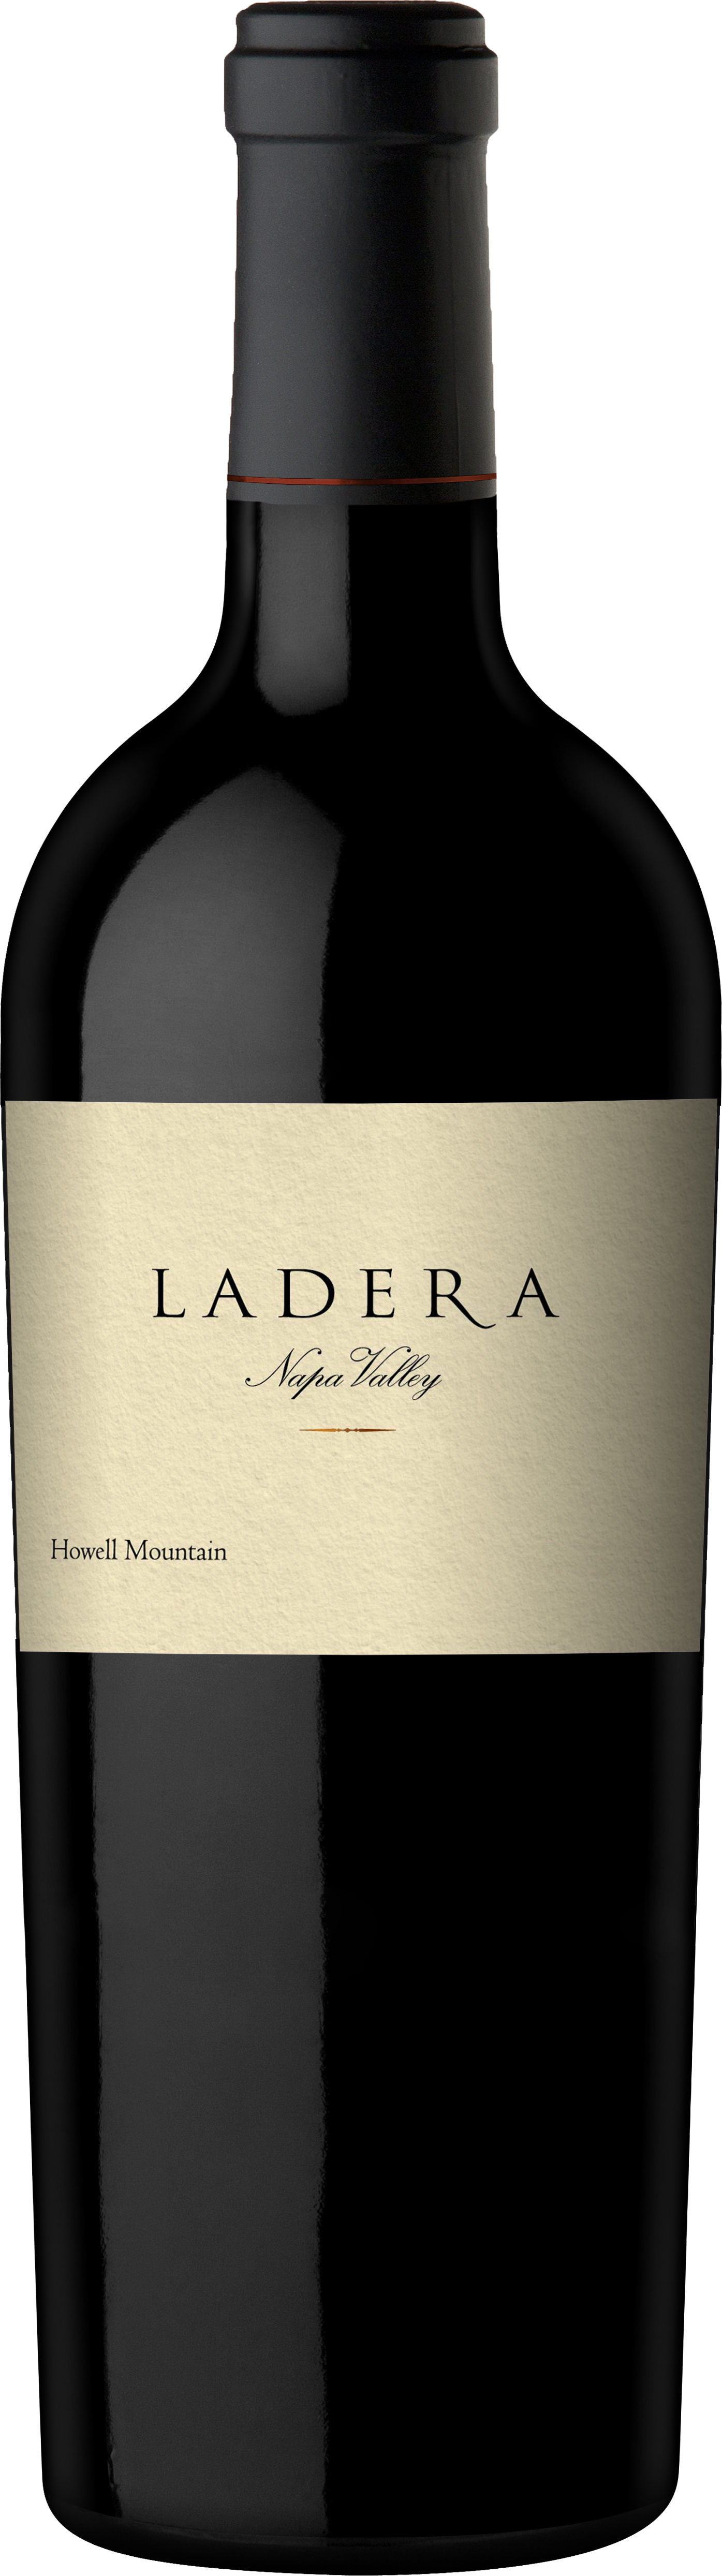 Product Image for 2002 Ladera Howell Mountain Cabernet Sauvignon